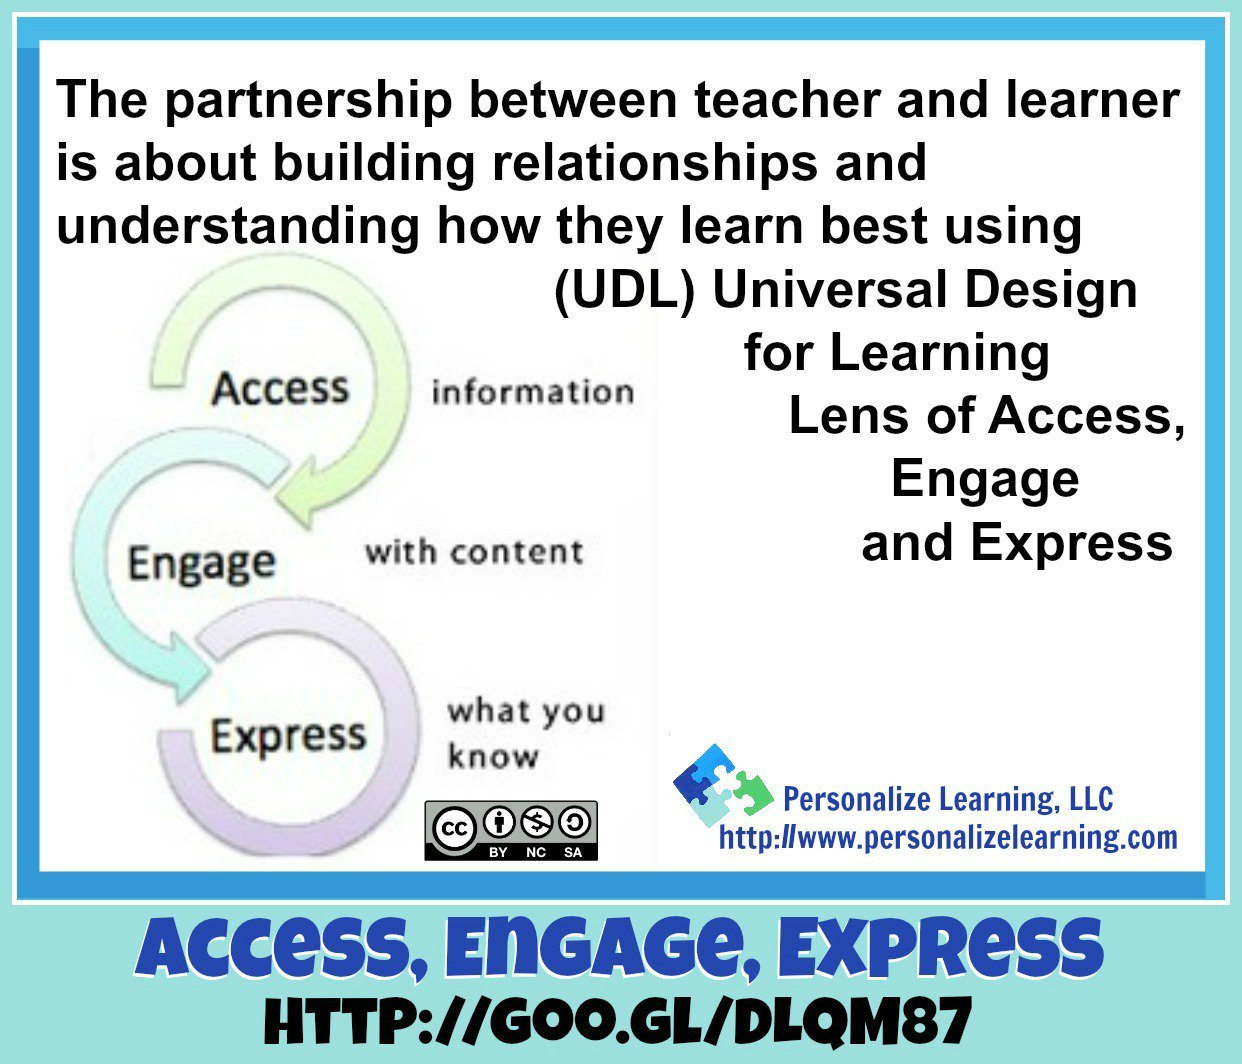 .@bbray27 @khmmc have championed UDL since 2012 & based Access Engage Express on research @CAST_UDL #UDL2016 https://t.co/pVYqyTKqSE